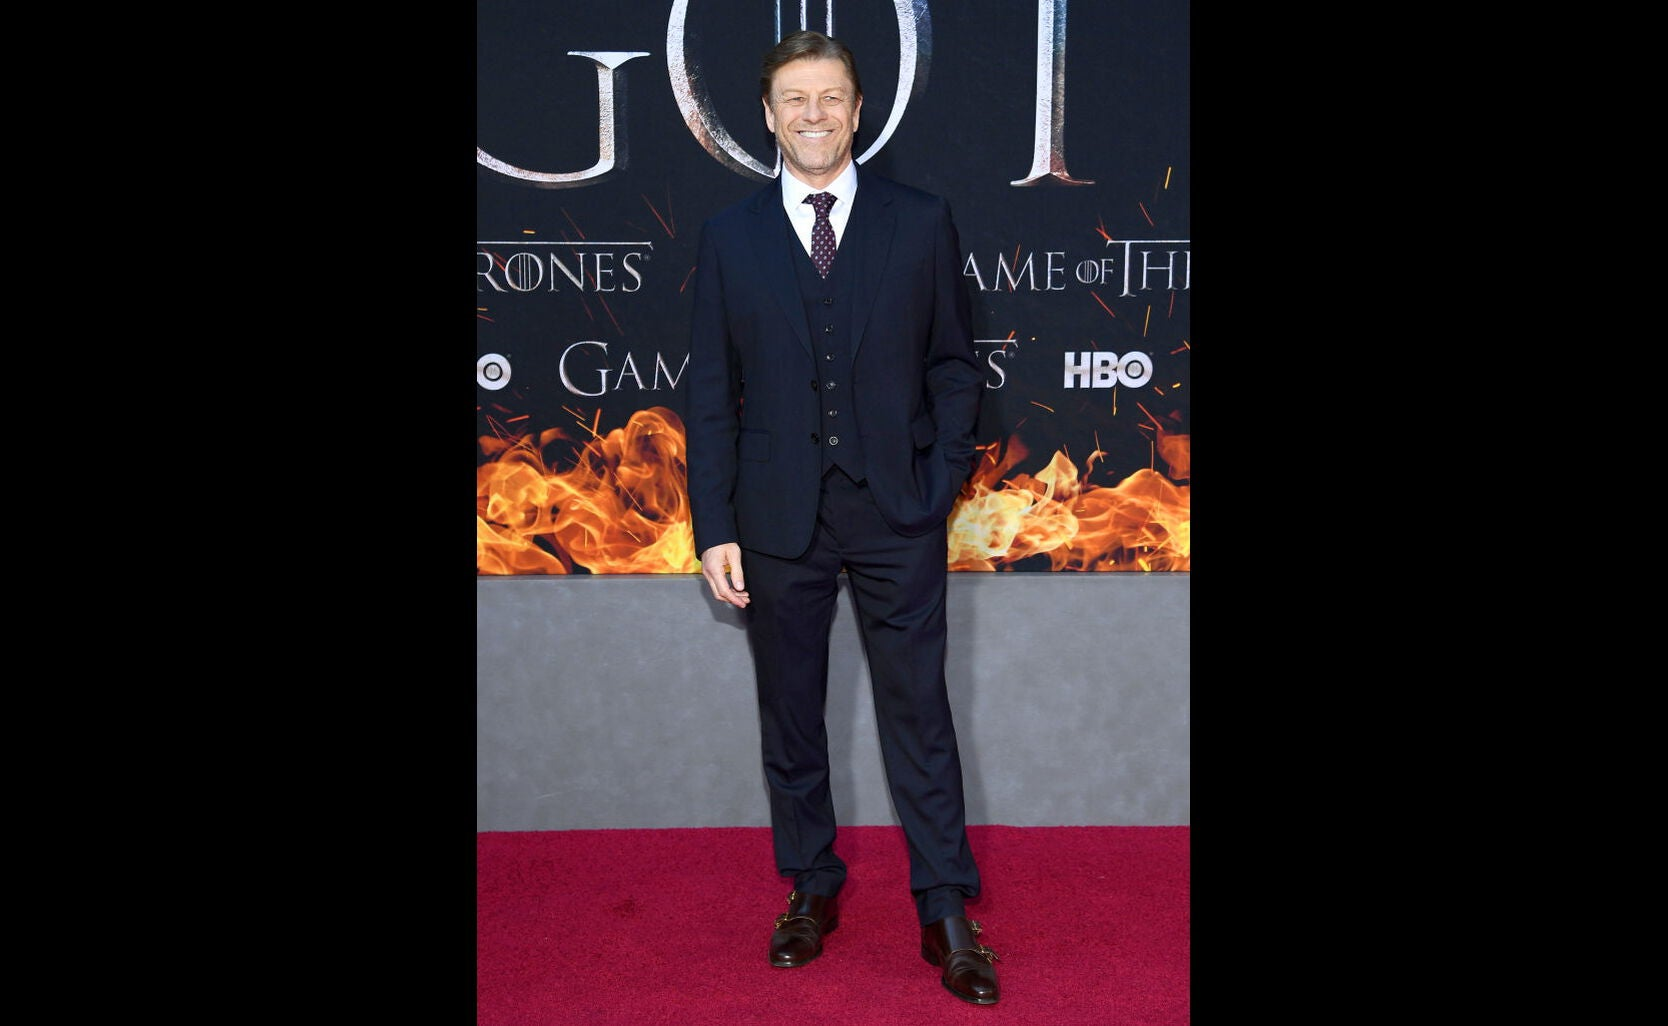 Sean Bean at the premiere of Game of Thrones, s8